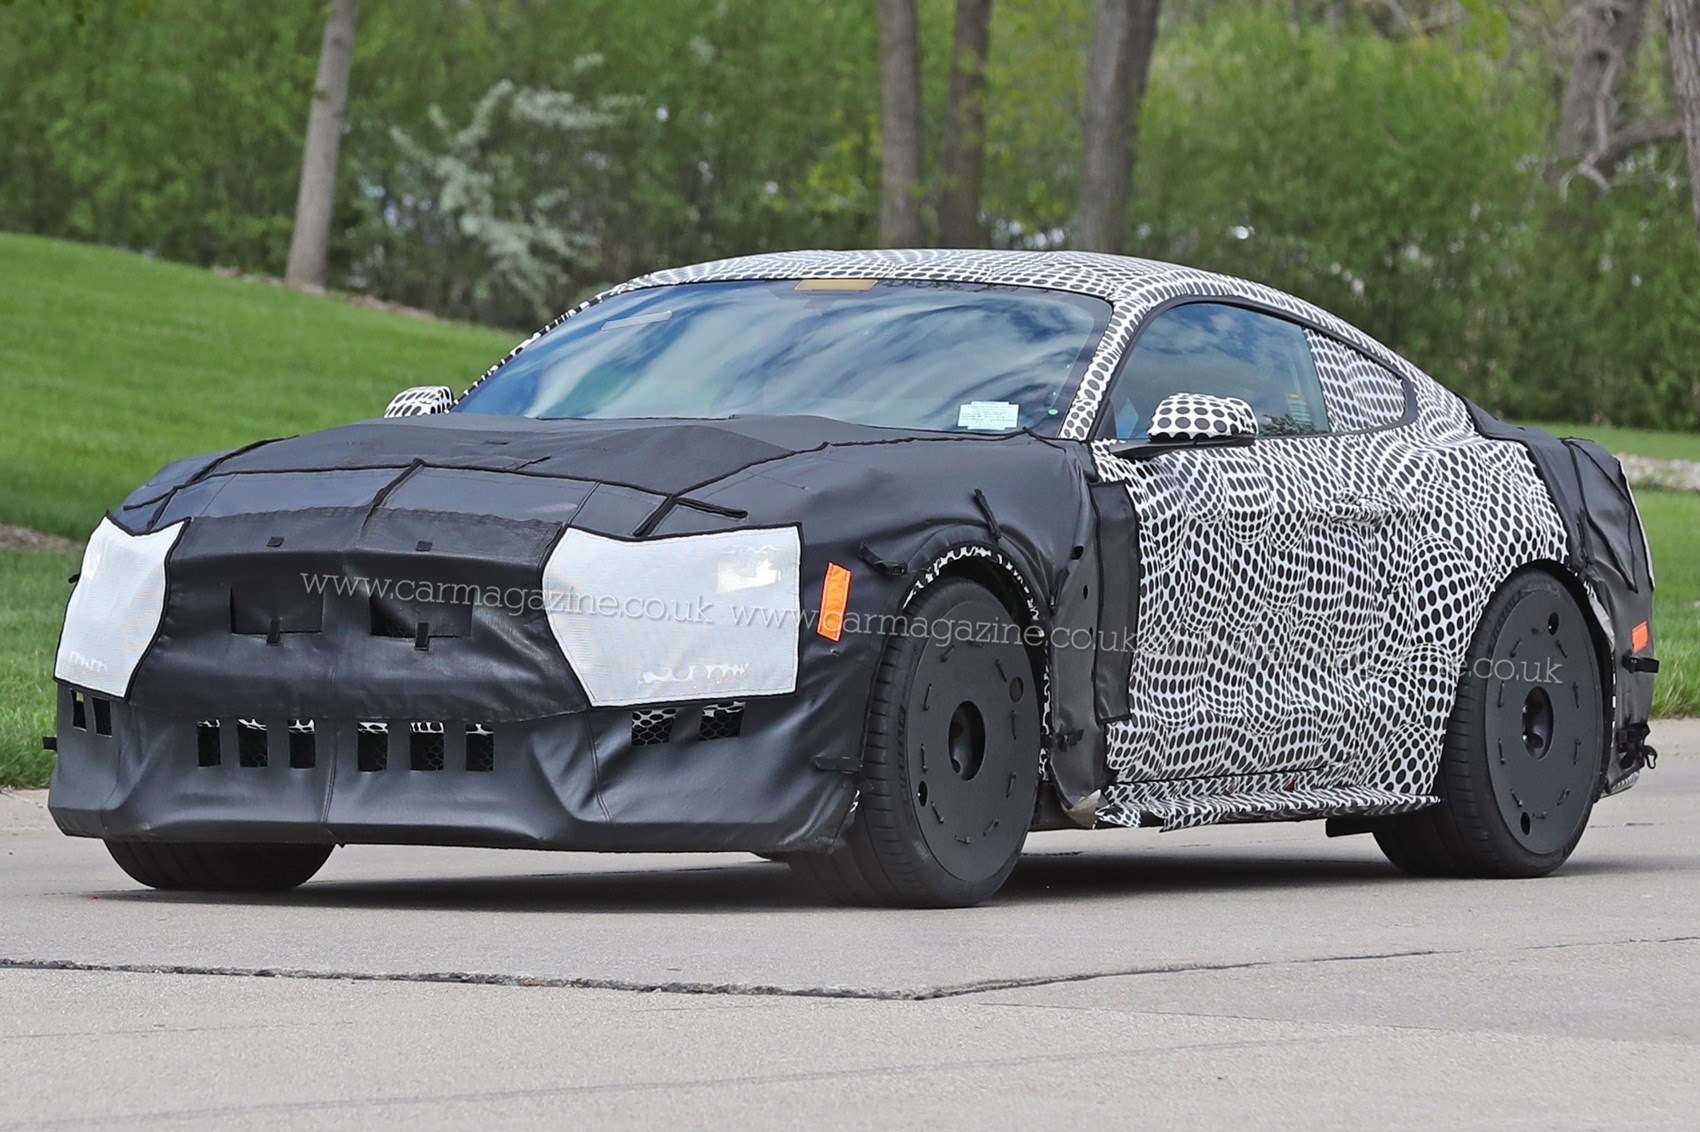 Ford Mustang GT500 (2018): spy shots and first details ...